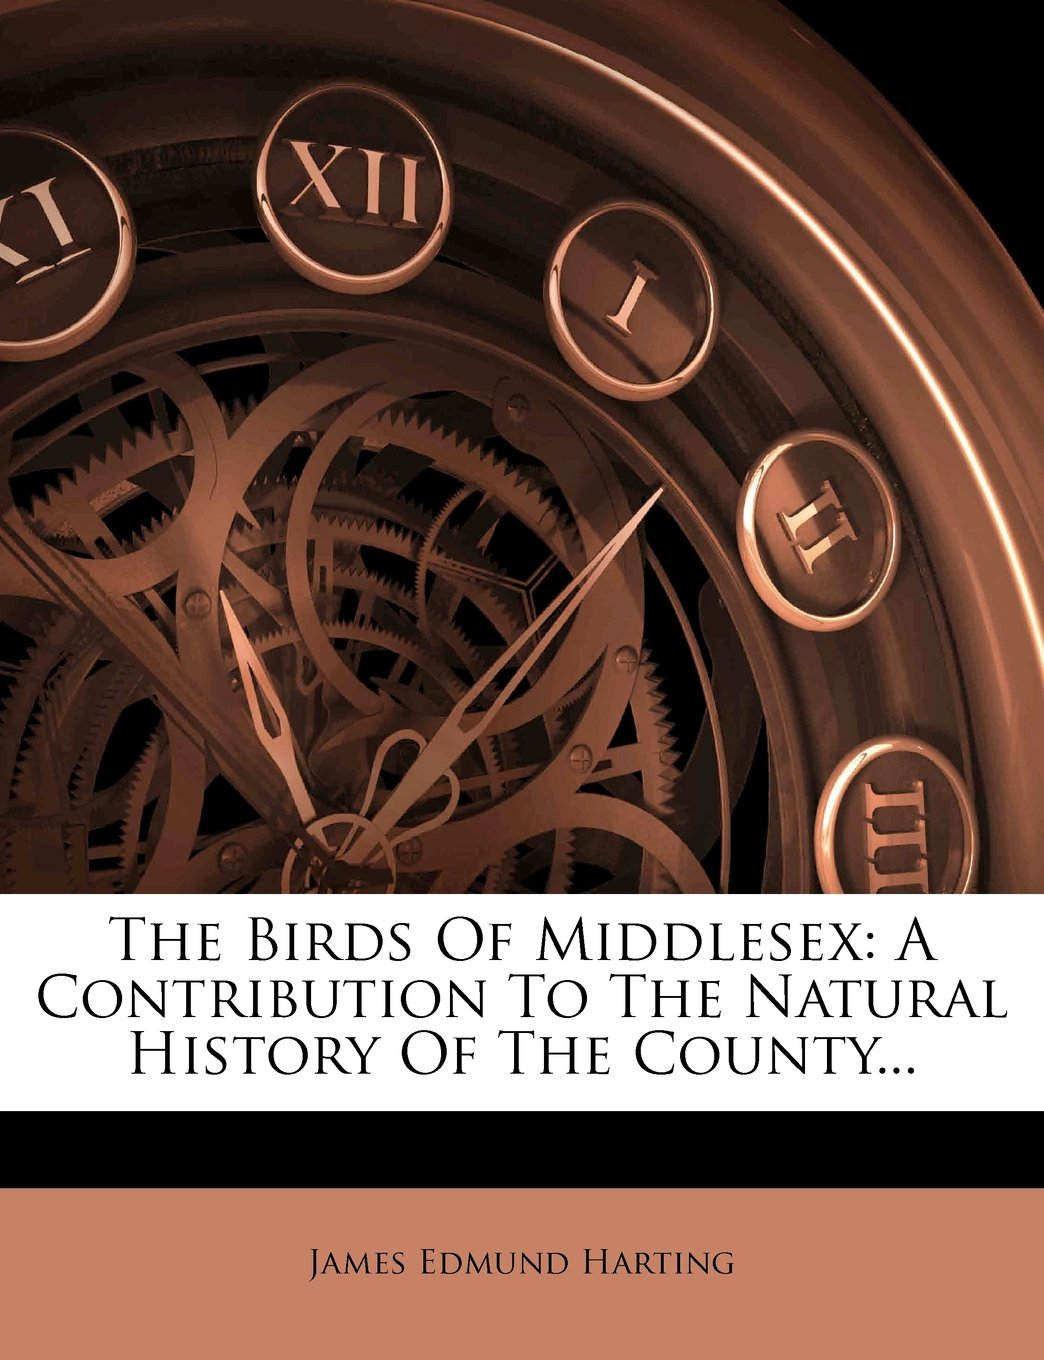 Download The Birds of Middlesex: A Contribution to the Natural History of the County... pdf